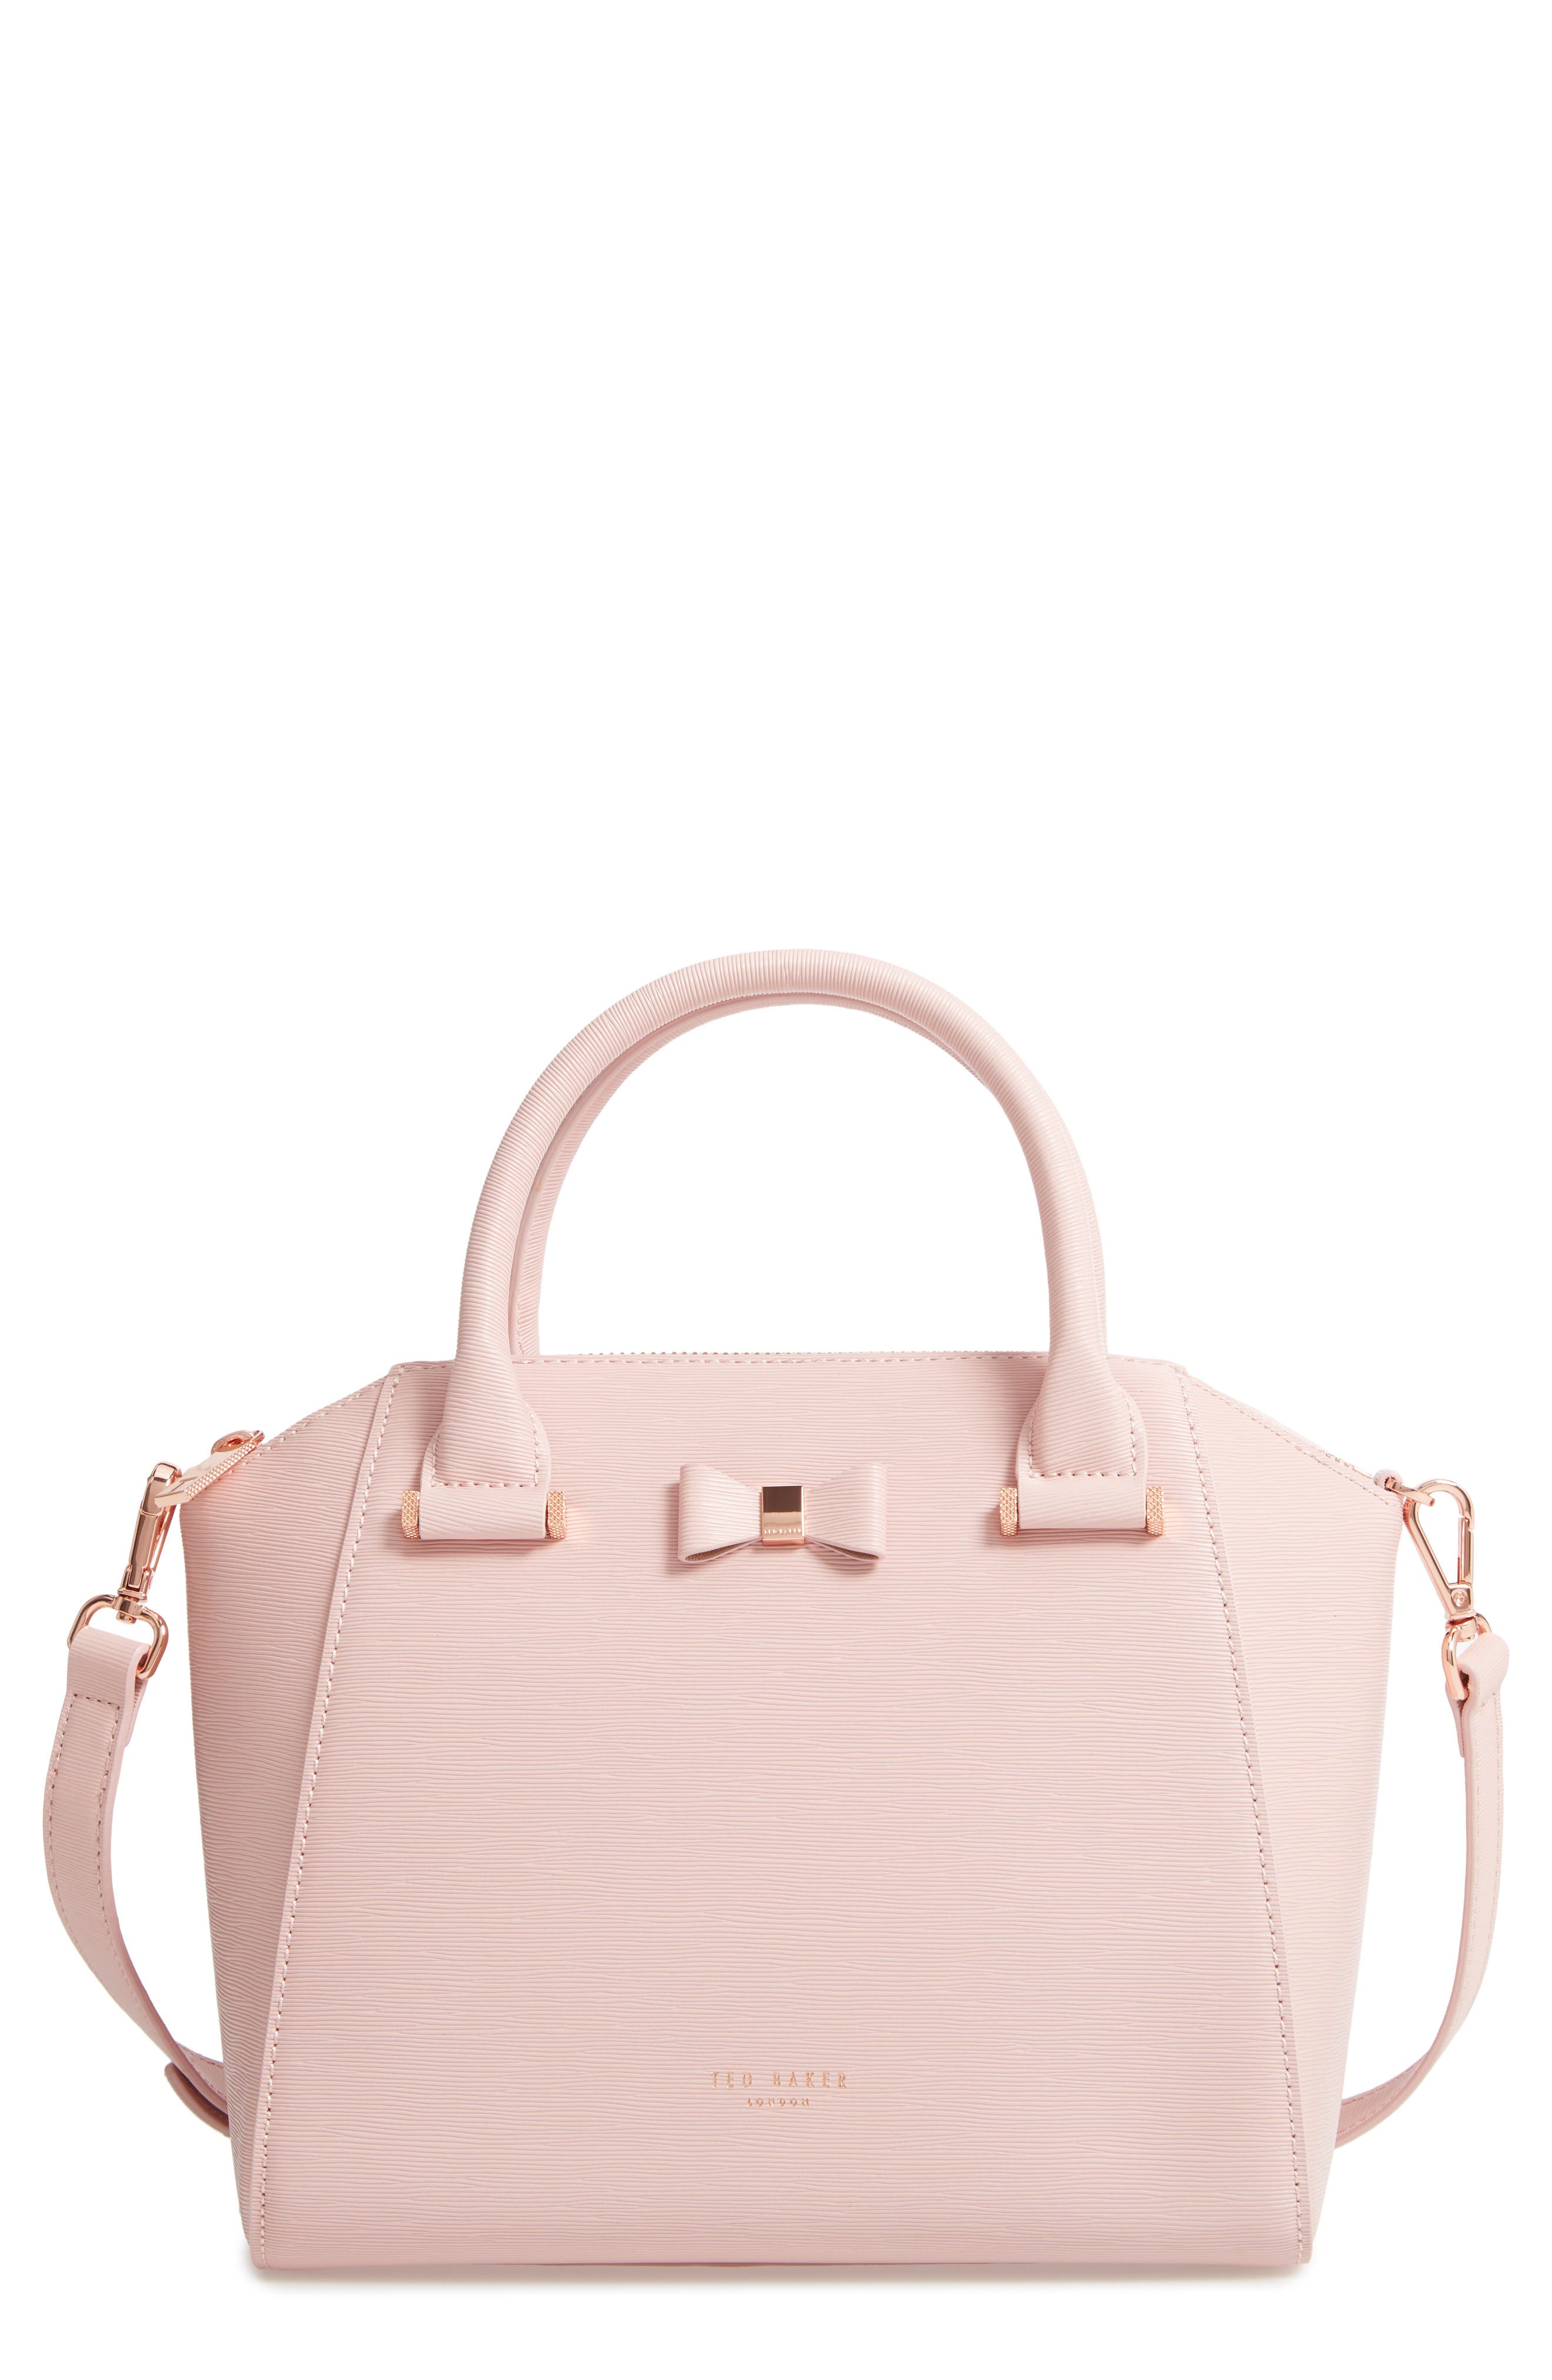 Bow Tote,                         Main,                         color, LIGHT PINK